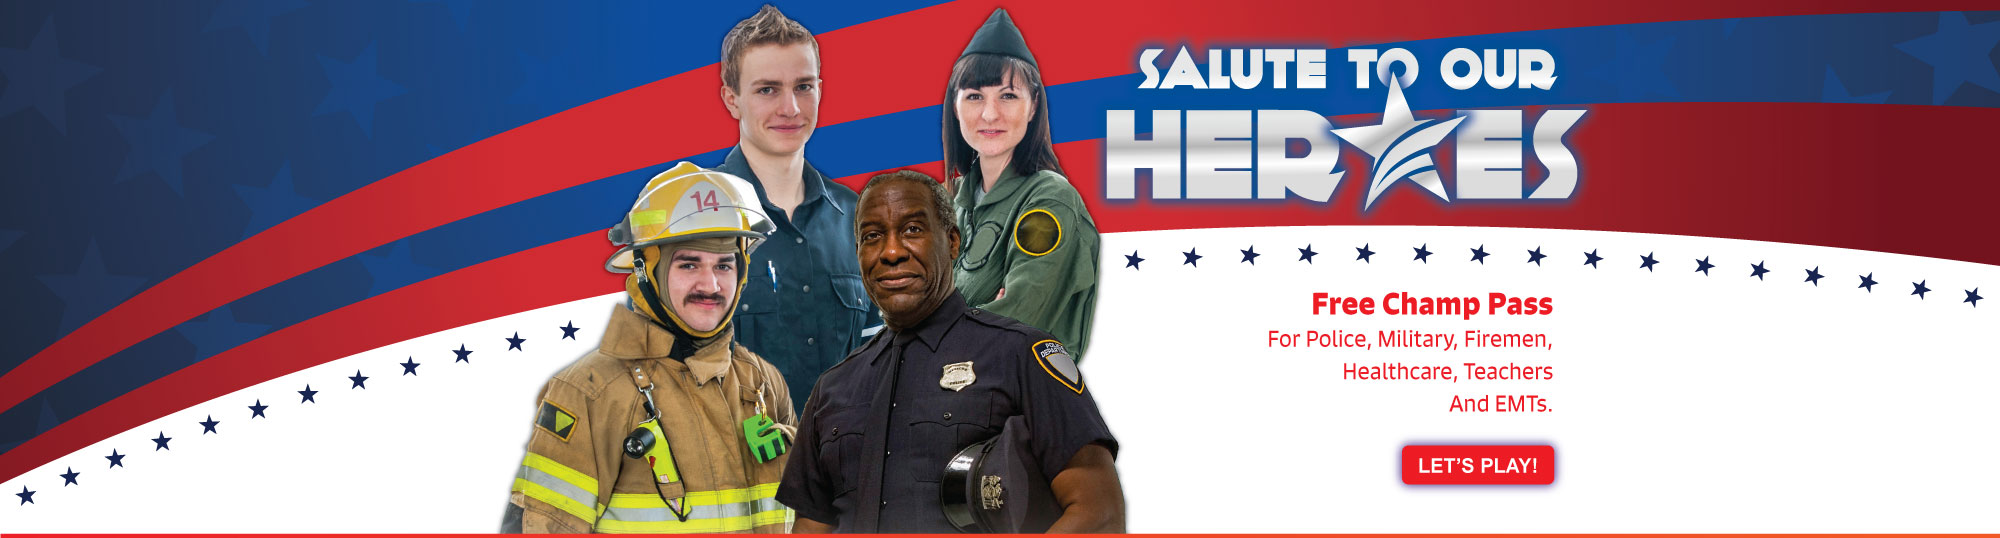 Salute To Our Heroes Masthead